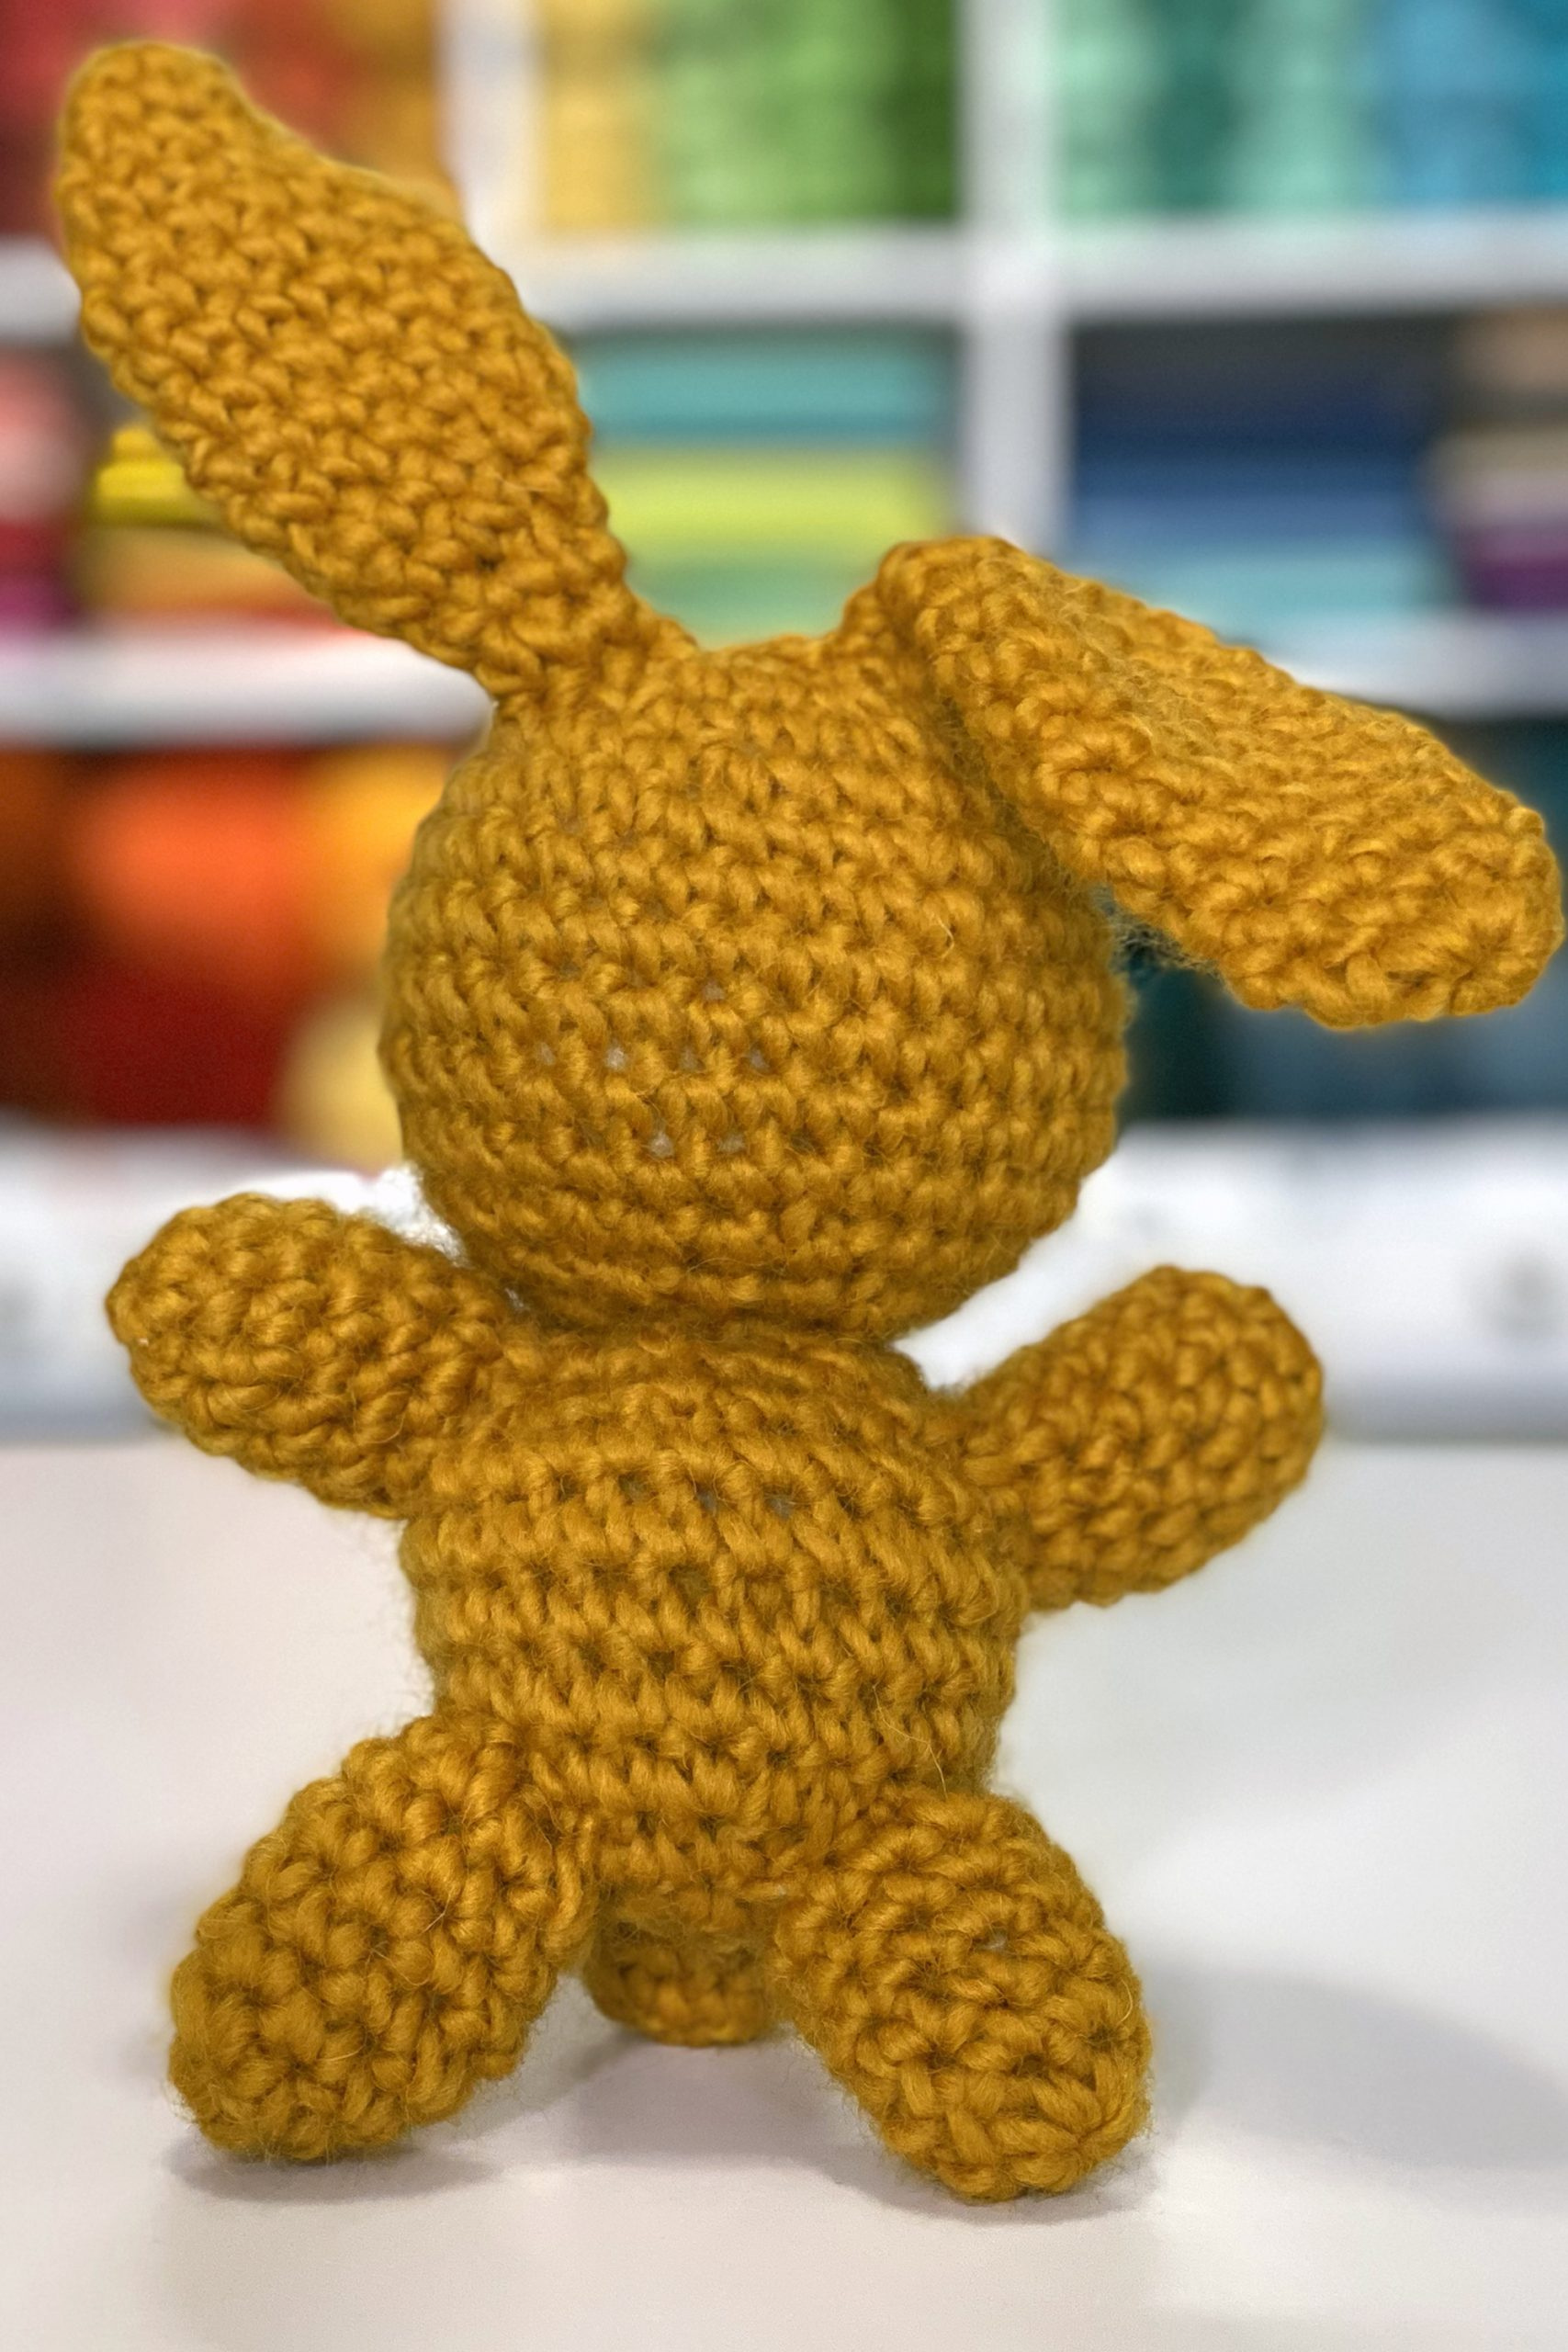 small brown crocheted bunny